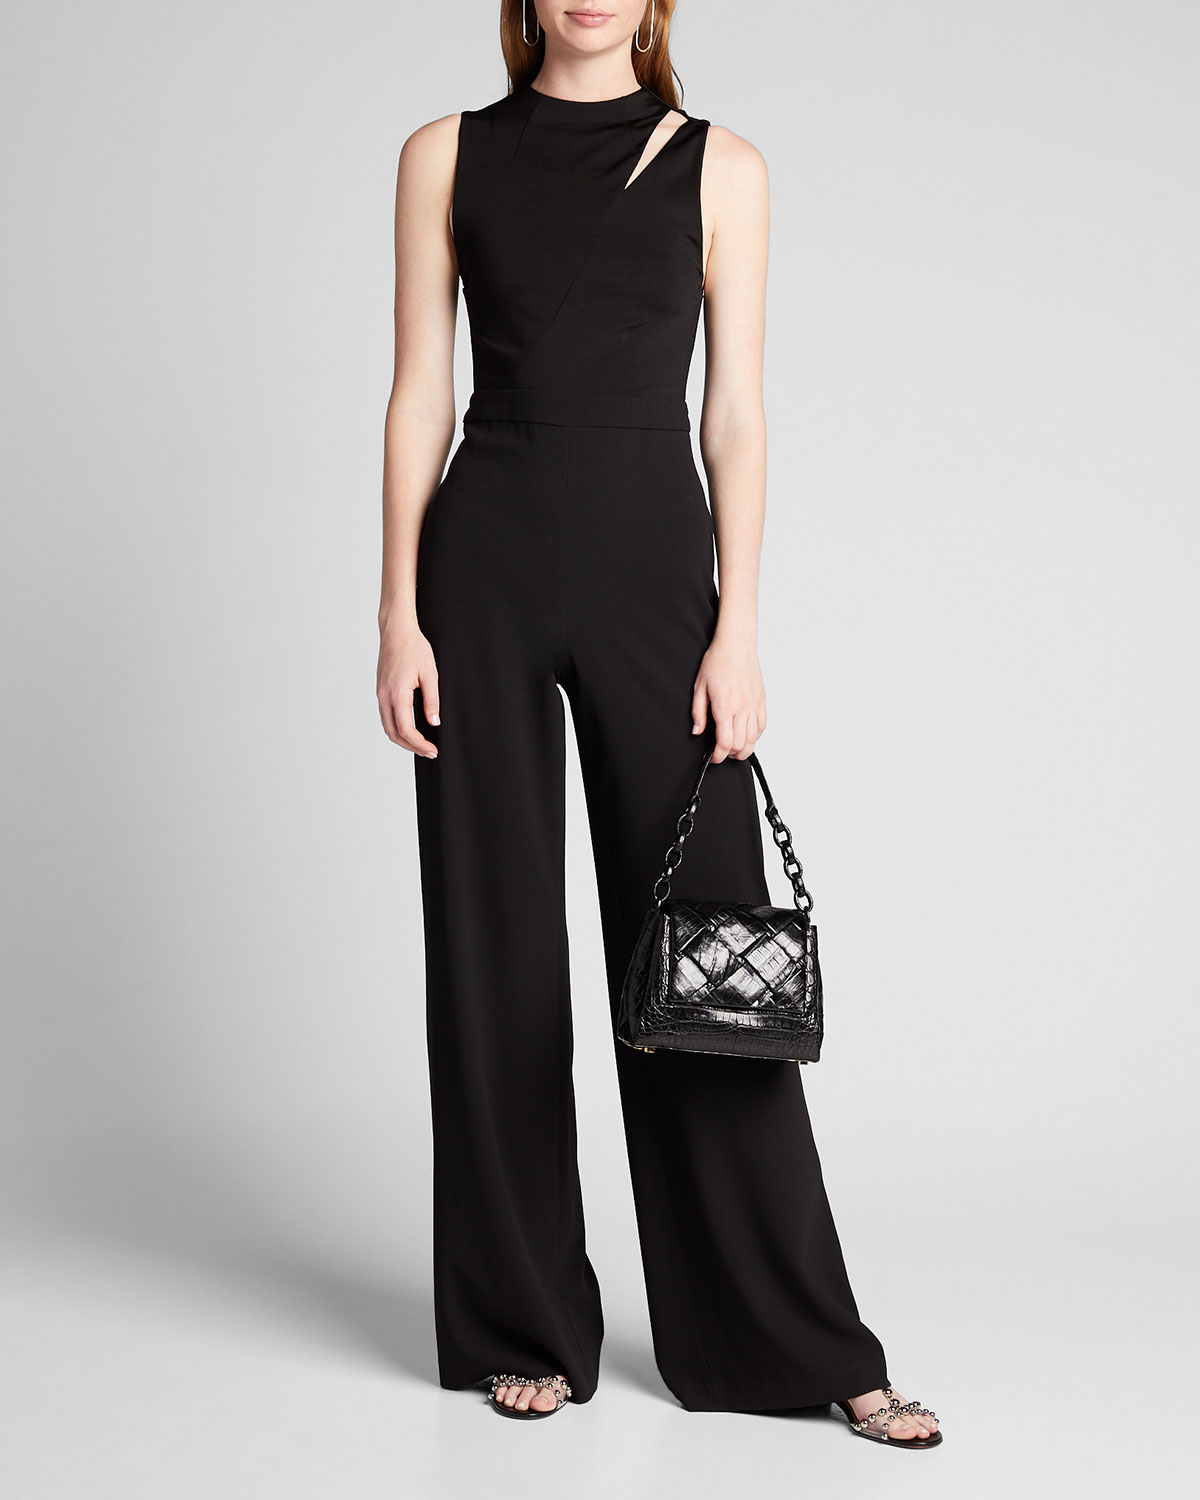 Alice And Olivia Suits IVY FITTED CUTOUT JUMPSUIT